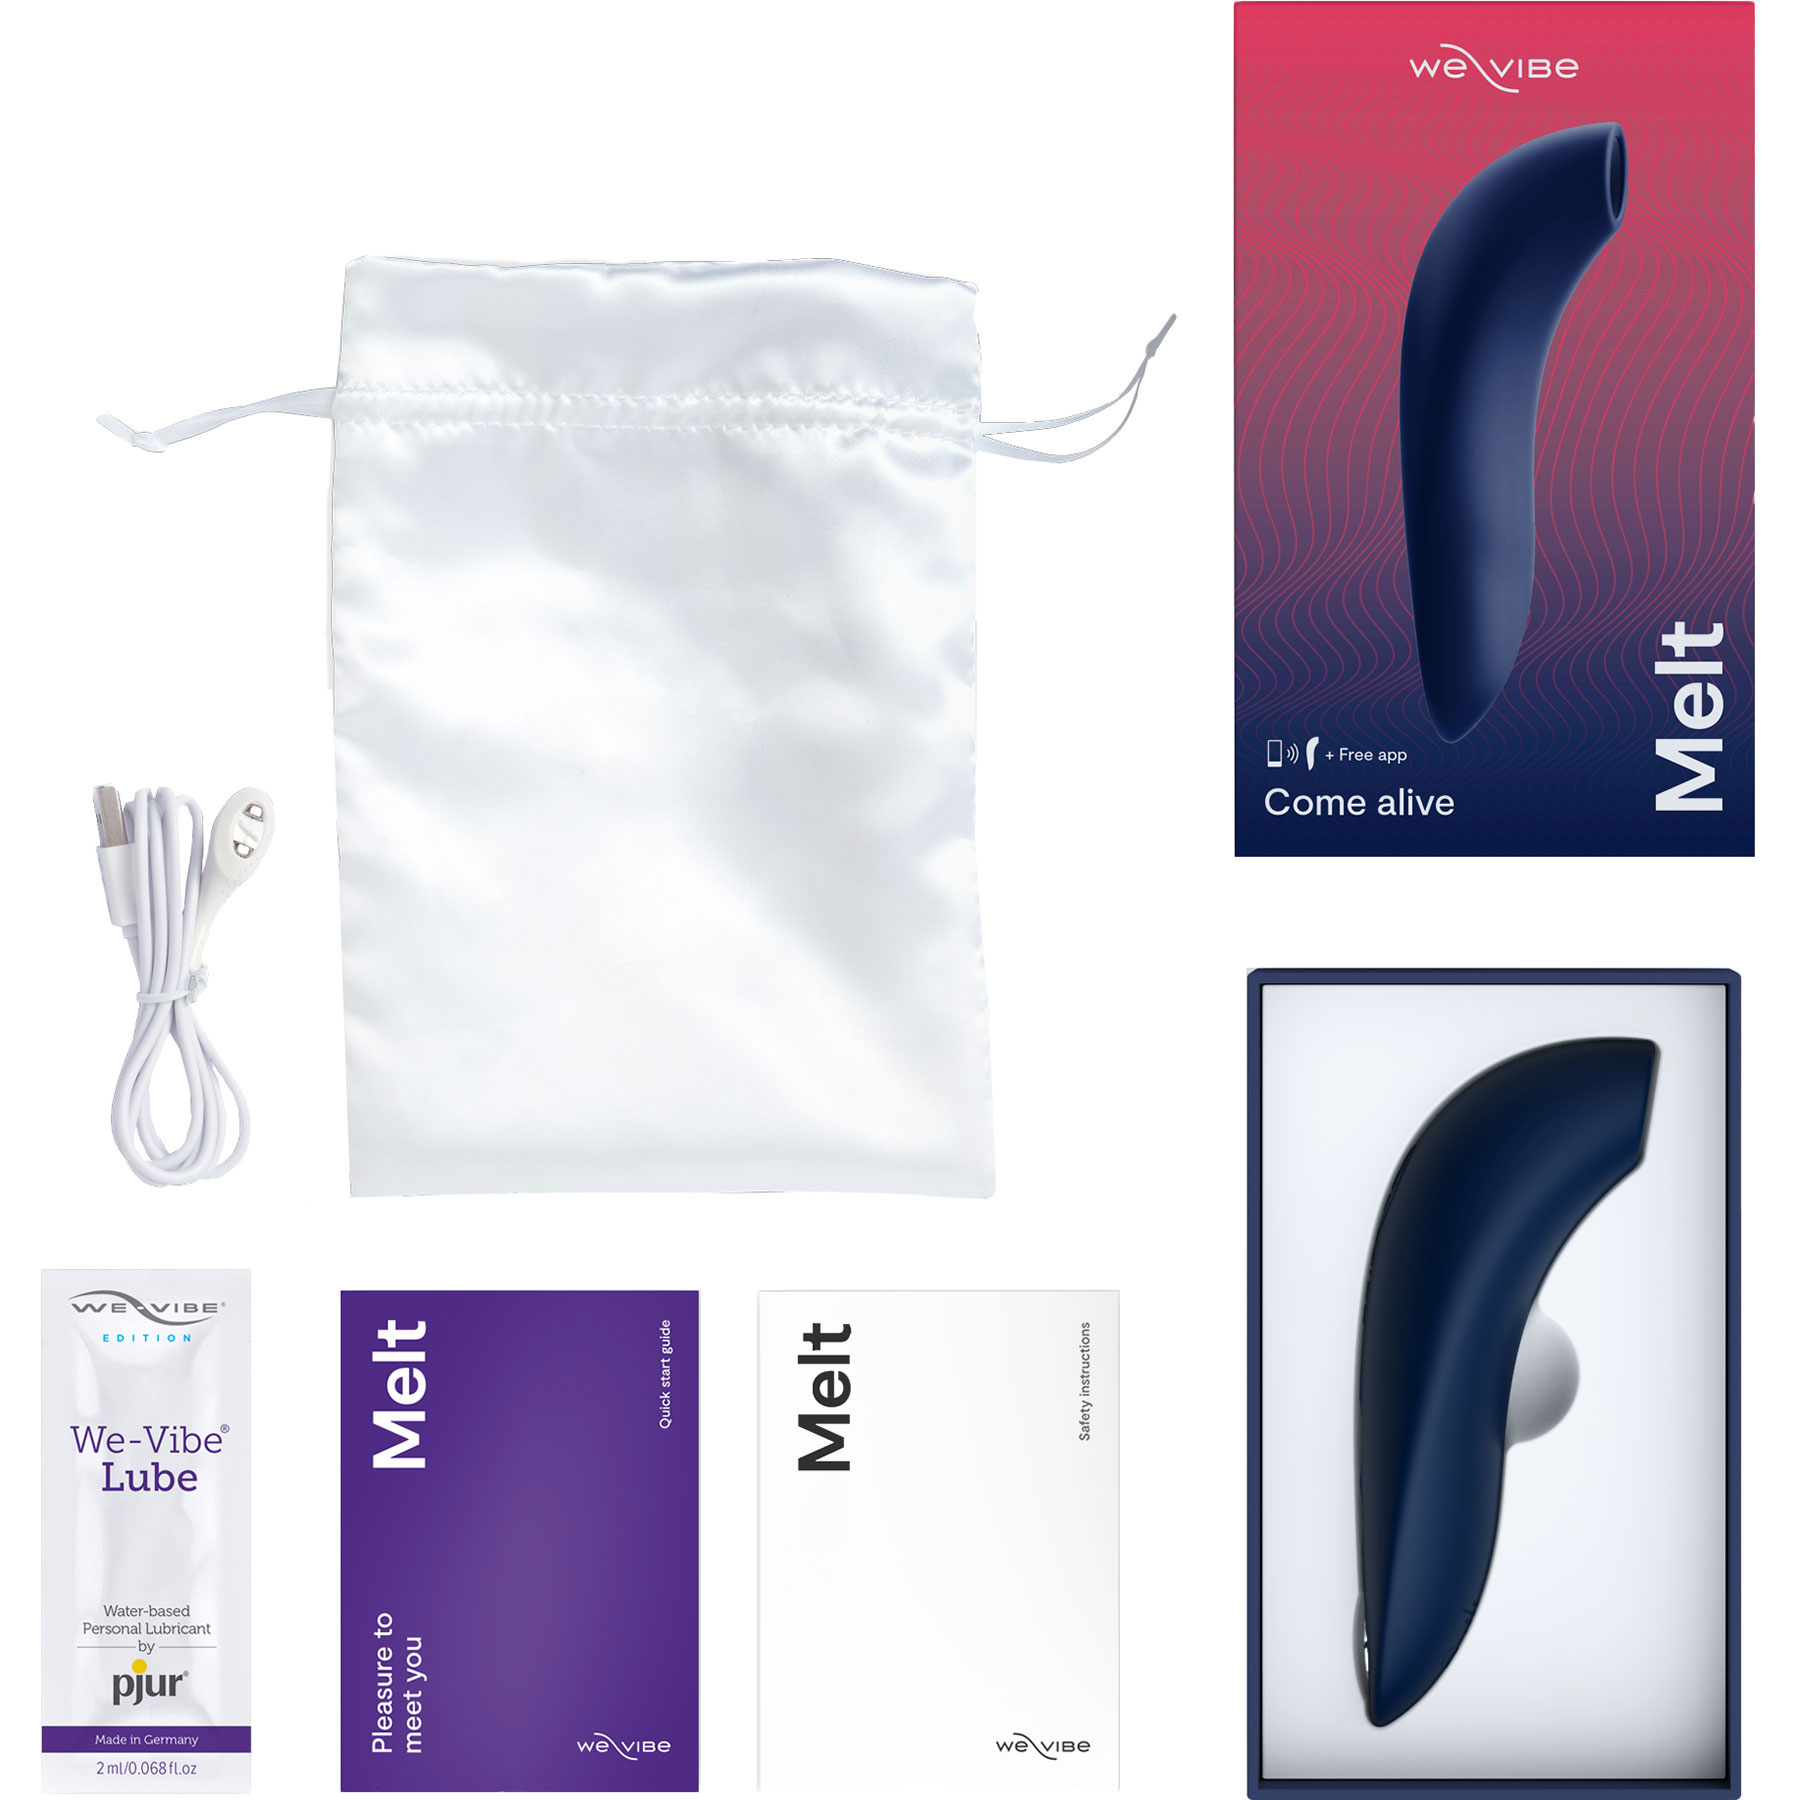 We-Vibe Melt -  What's Included